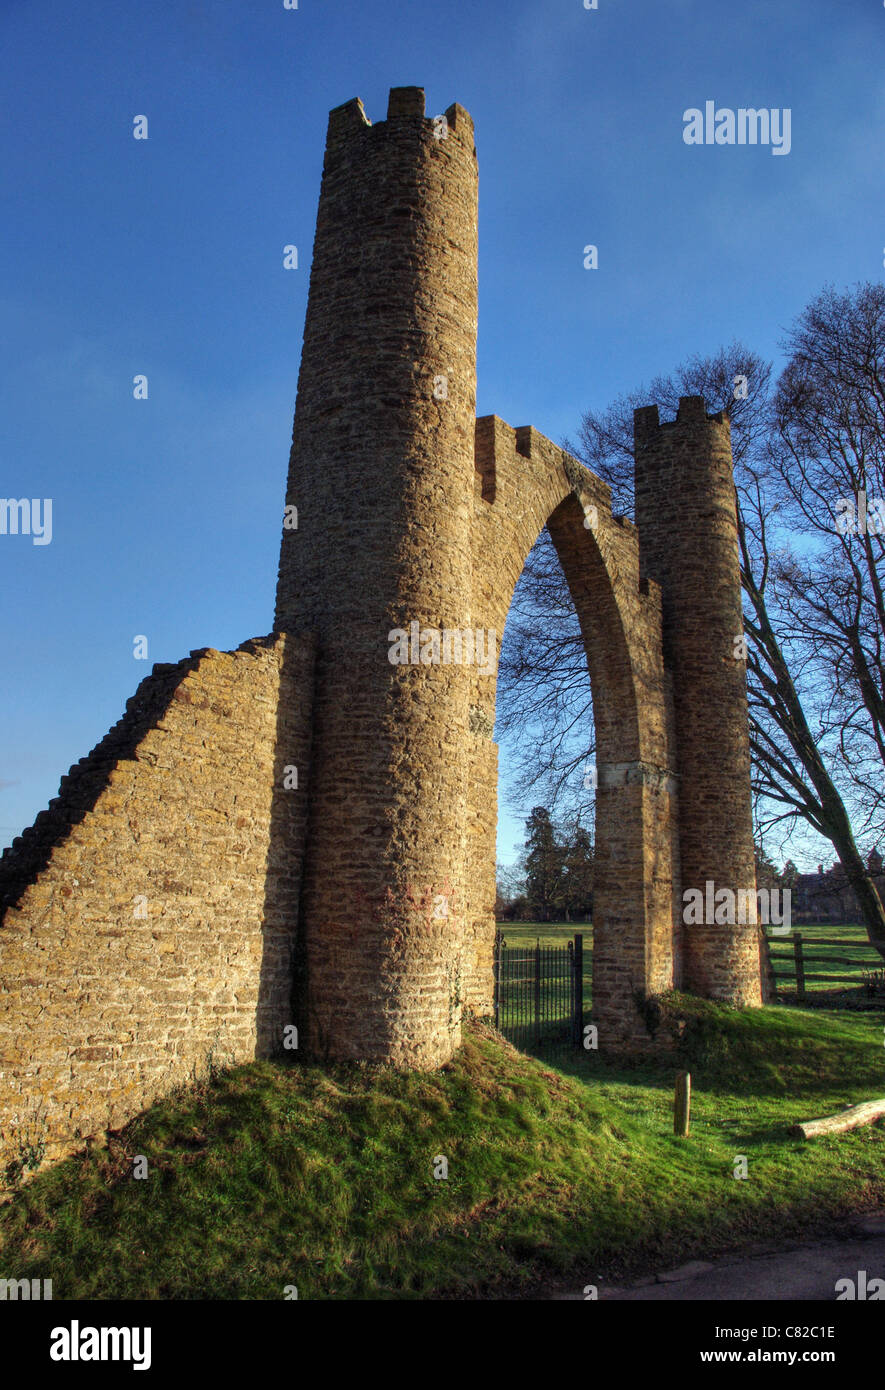 The Spectacle, a folly on the Boughton Park Estate, Northamptonshire, UK - Stock Image